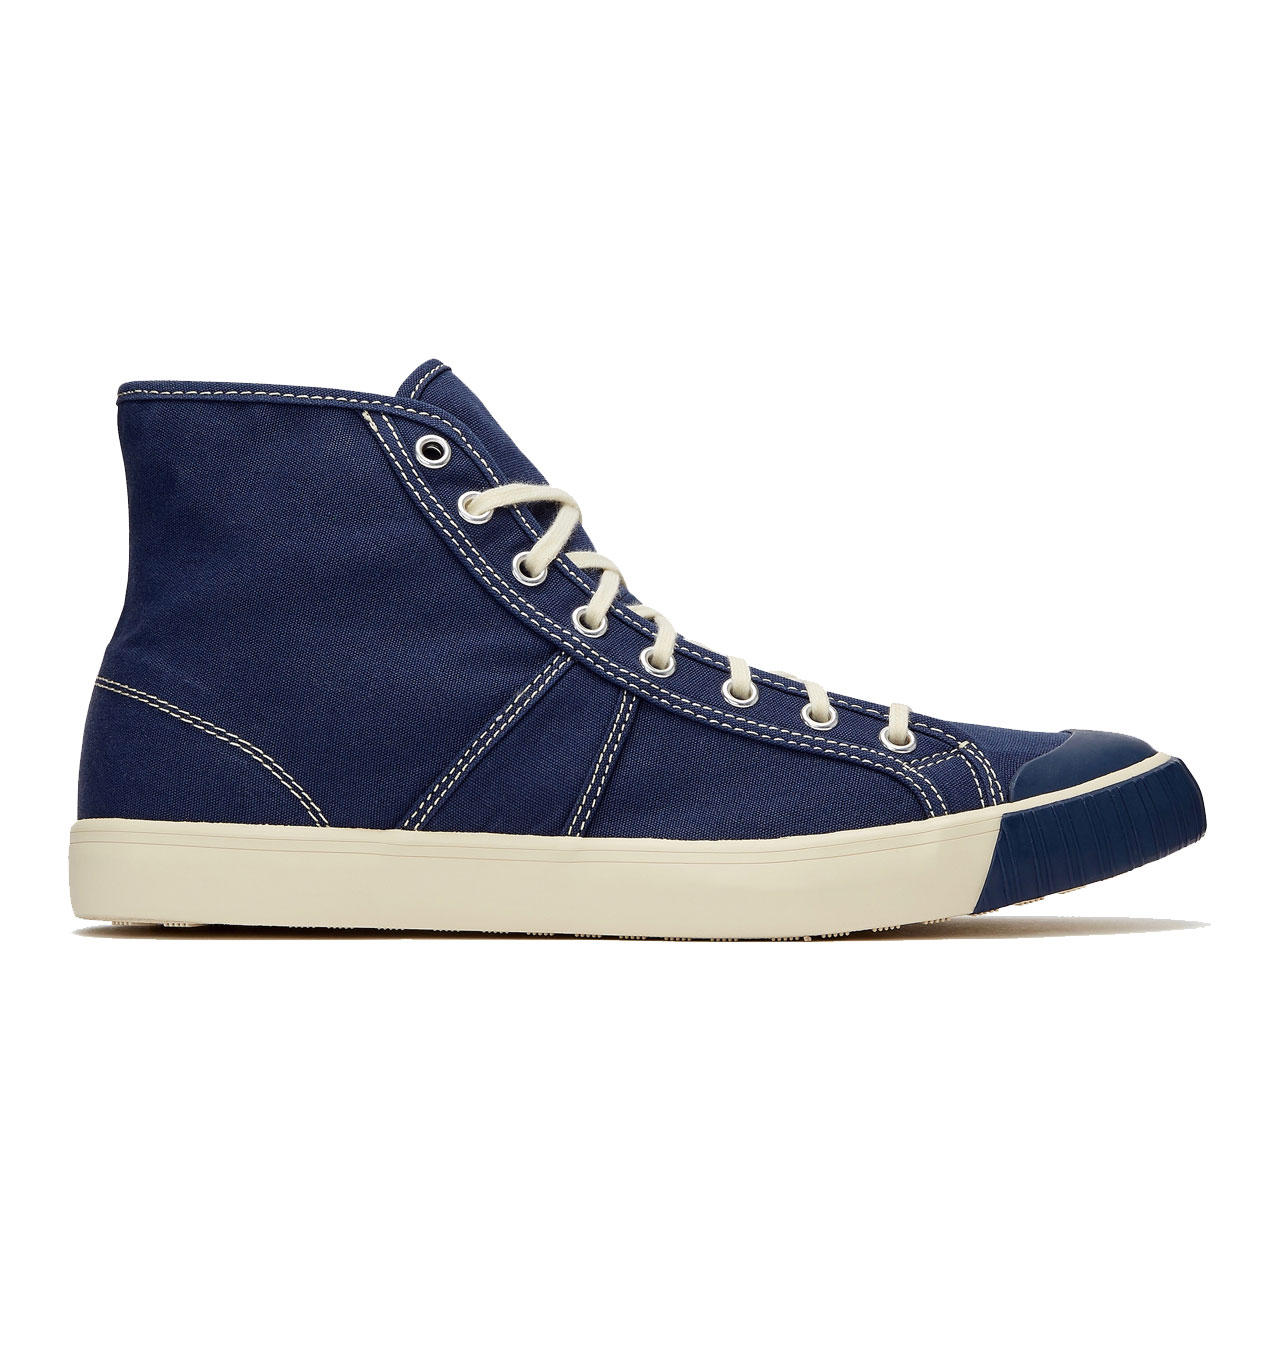 Colchester-Rubber-Co---1892-National-Treasure-High-Top---Navy-Blue-4123